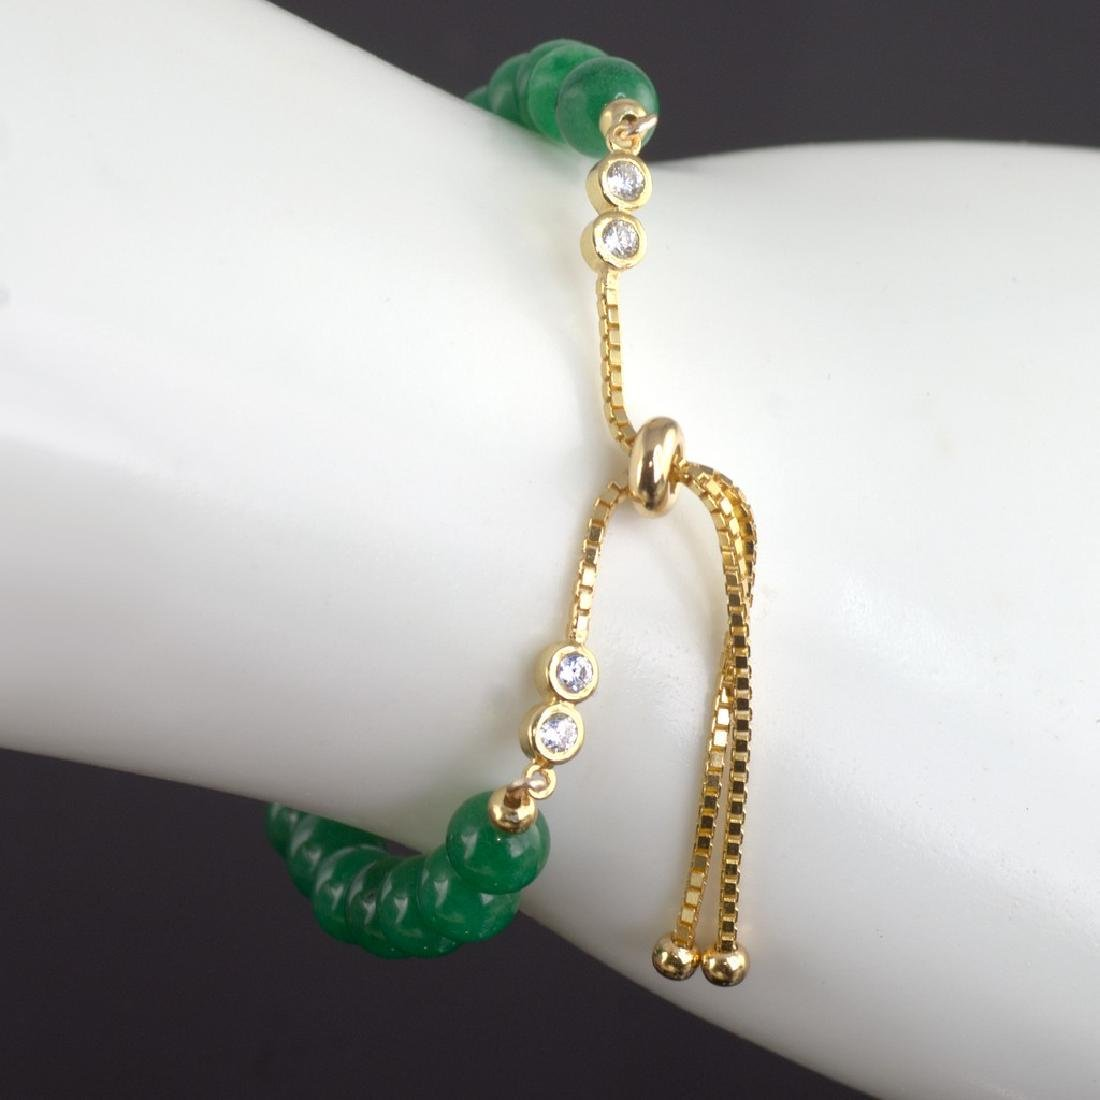 Adjustable Imperial Green Jade Bracelet - 5